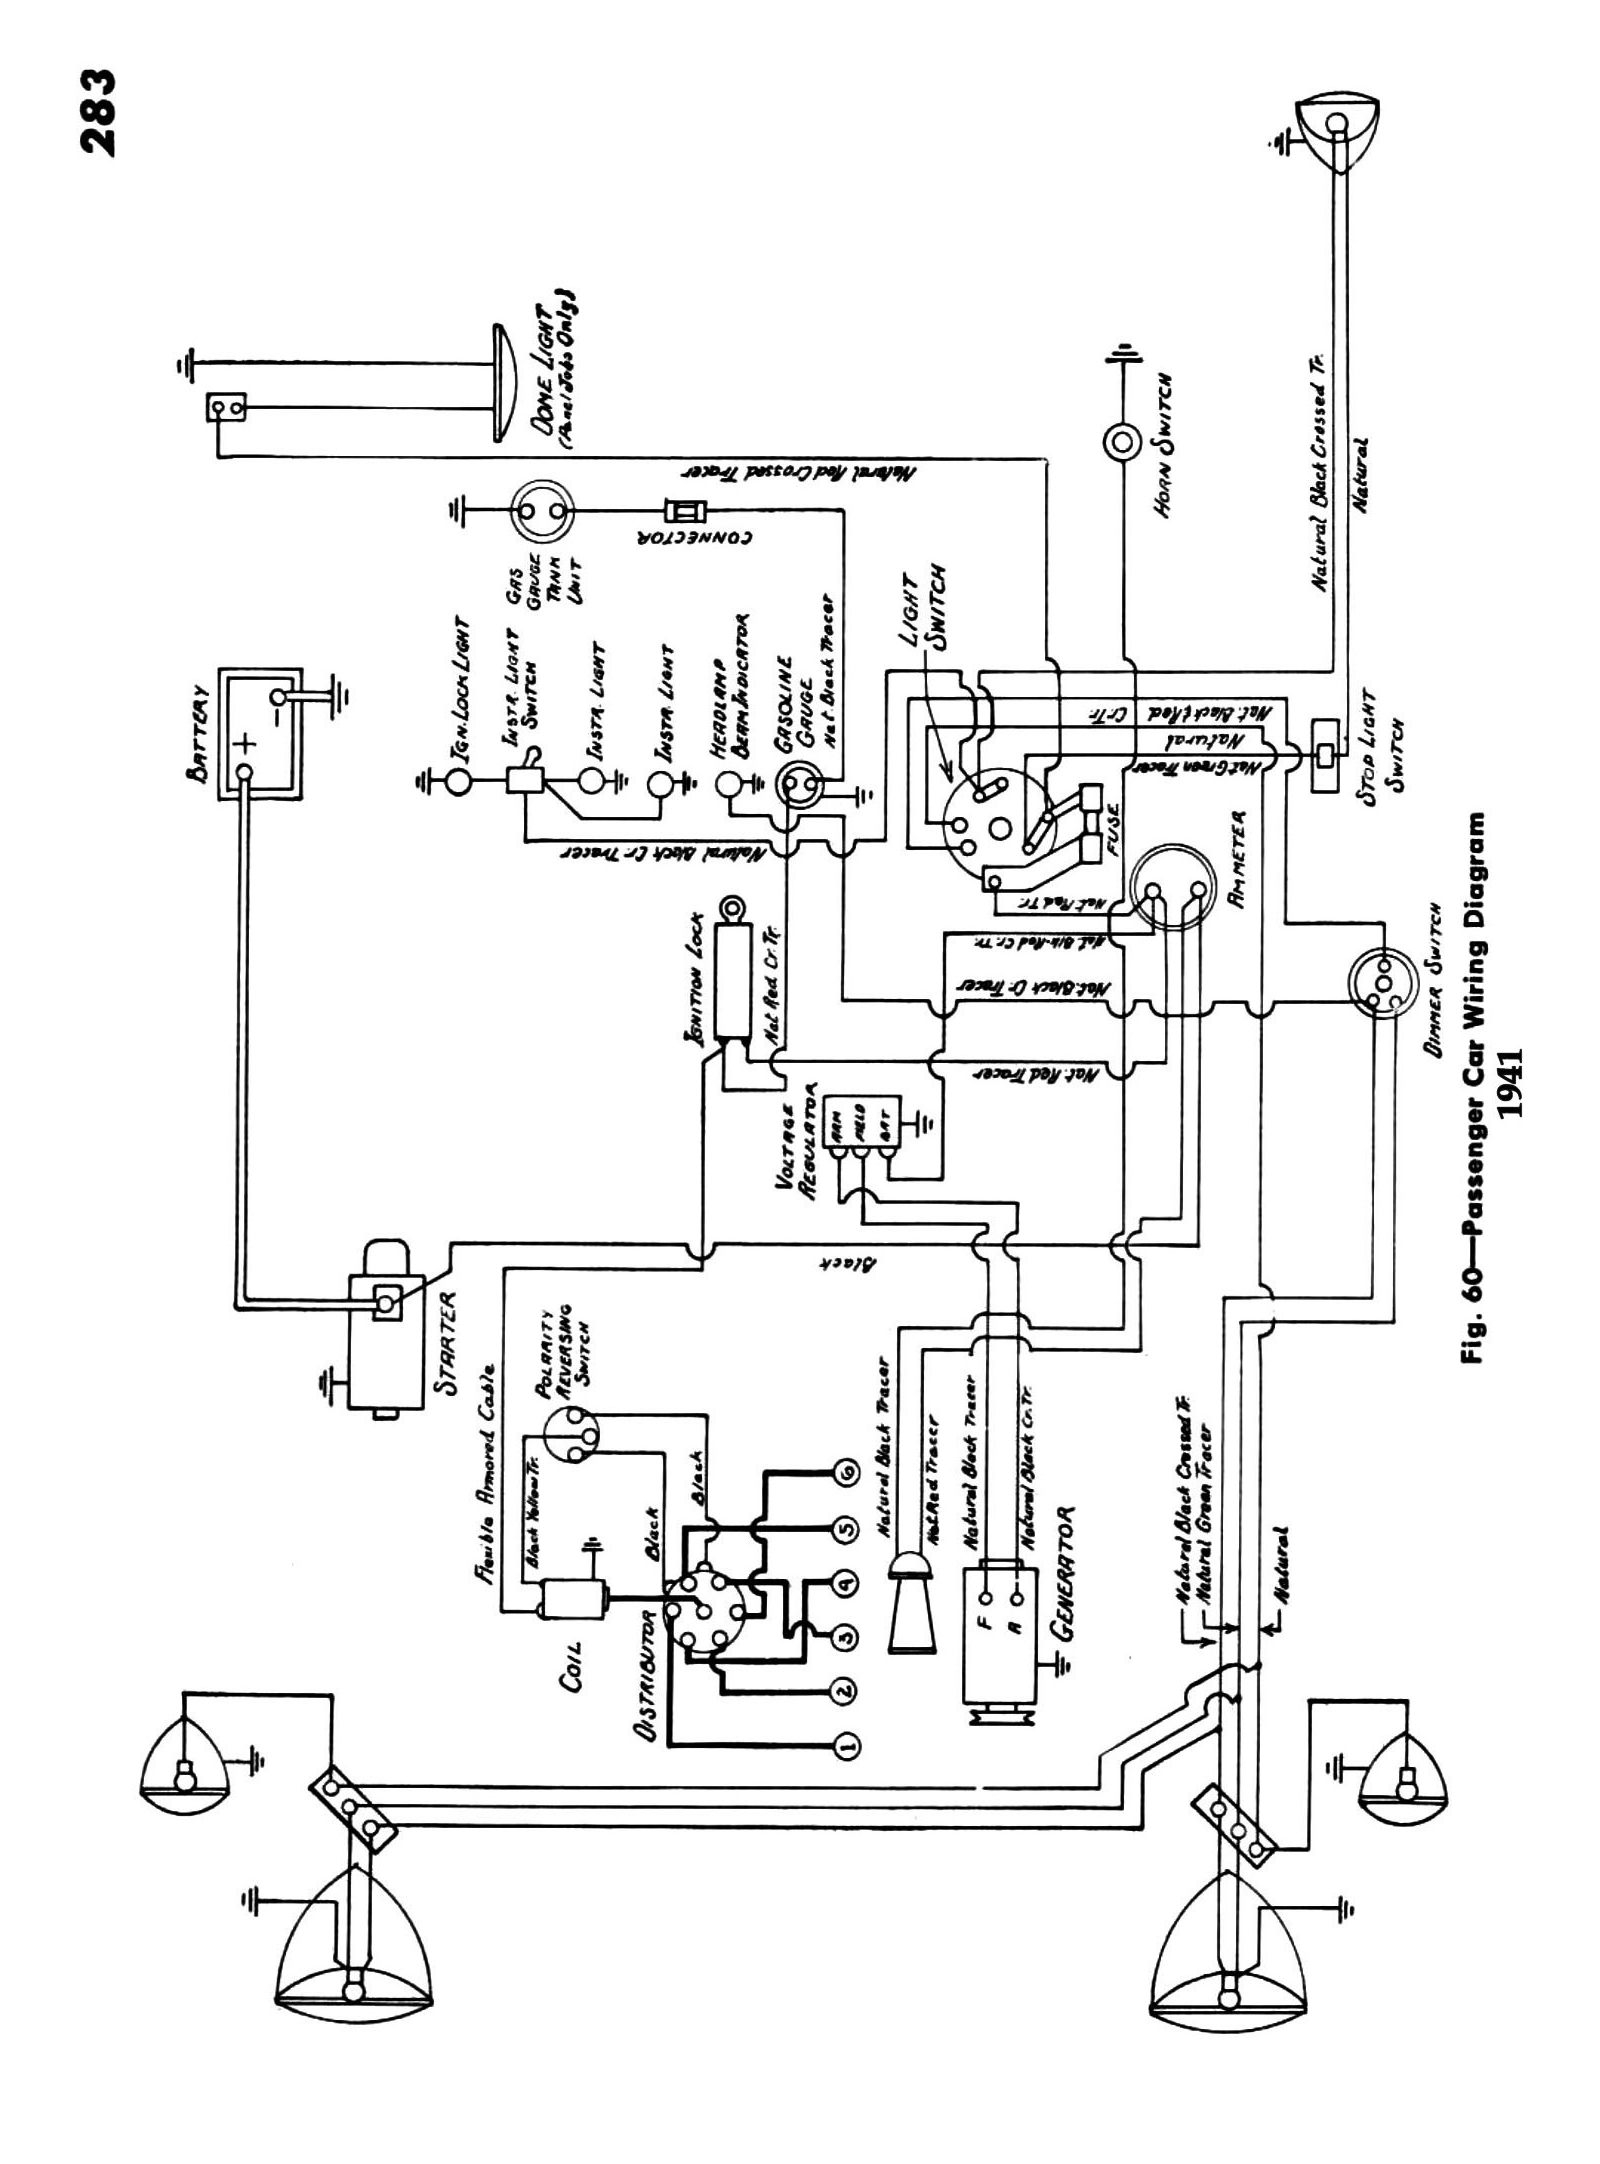 1936 Pontiac Wiring Diagram - Wiring Diagrams Bib on 1940 cadillac wiring diagram, auto light switch wiring diagram, 1940 buick wiring diagram, 1960 chevy wiring diagram, 1949 cadillac wiring diagram, 1936 ford distributor, 1955 buick wiring diagram, 1927 buick wiring diagram, 1937 cord wiring diagram, 1950 cadillac wiring diagram, 1936 ford continental kit, 1938 buick wiring diagram, 1938 chevy wiring diagram, 1939 chevy wiring diagram, 1931 buick wiring diagram, 1948 chevy wiring diagram, 1936 ford brakes, 1942 chevy wiring diagram, 1948 cadillac wiring diagram, 6 volt generator wiring diagram,